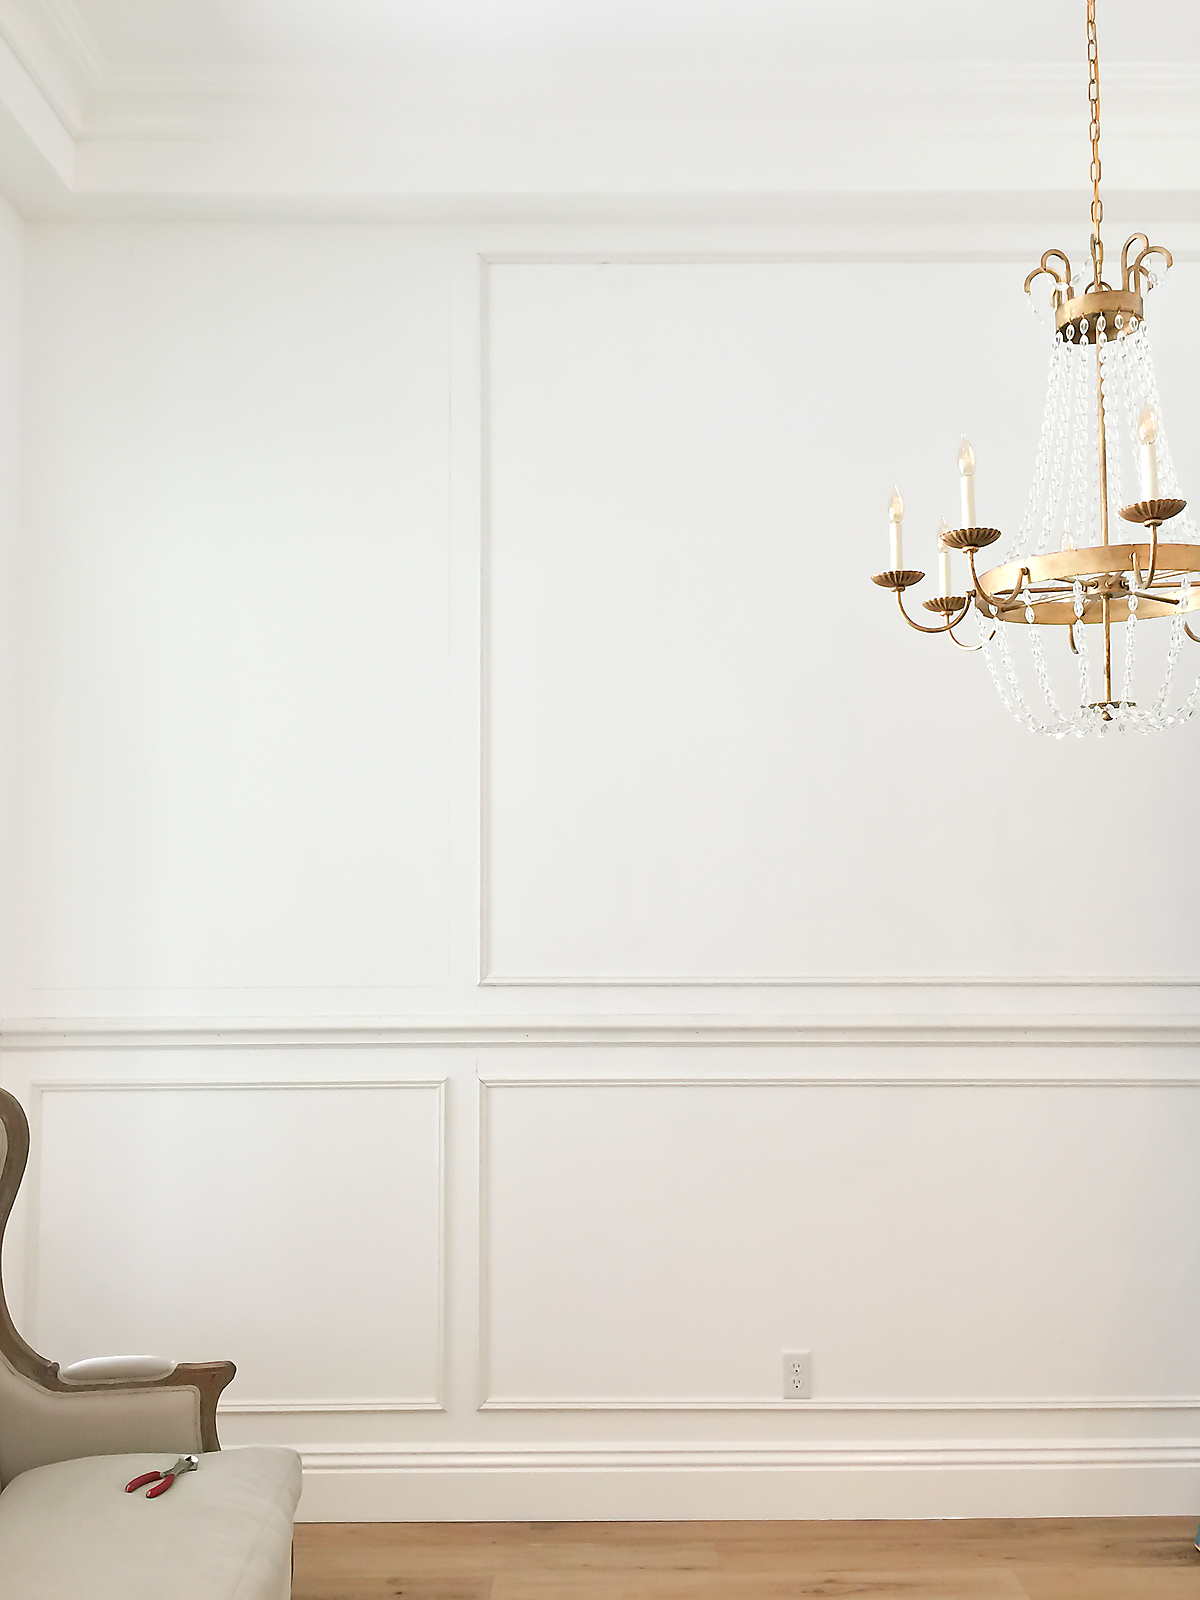 maggie-holmes-dining-room-moulding-tips1